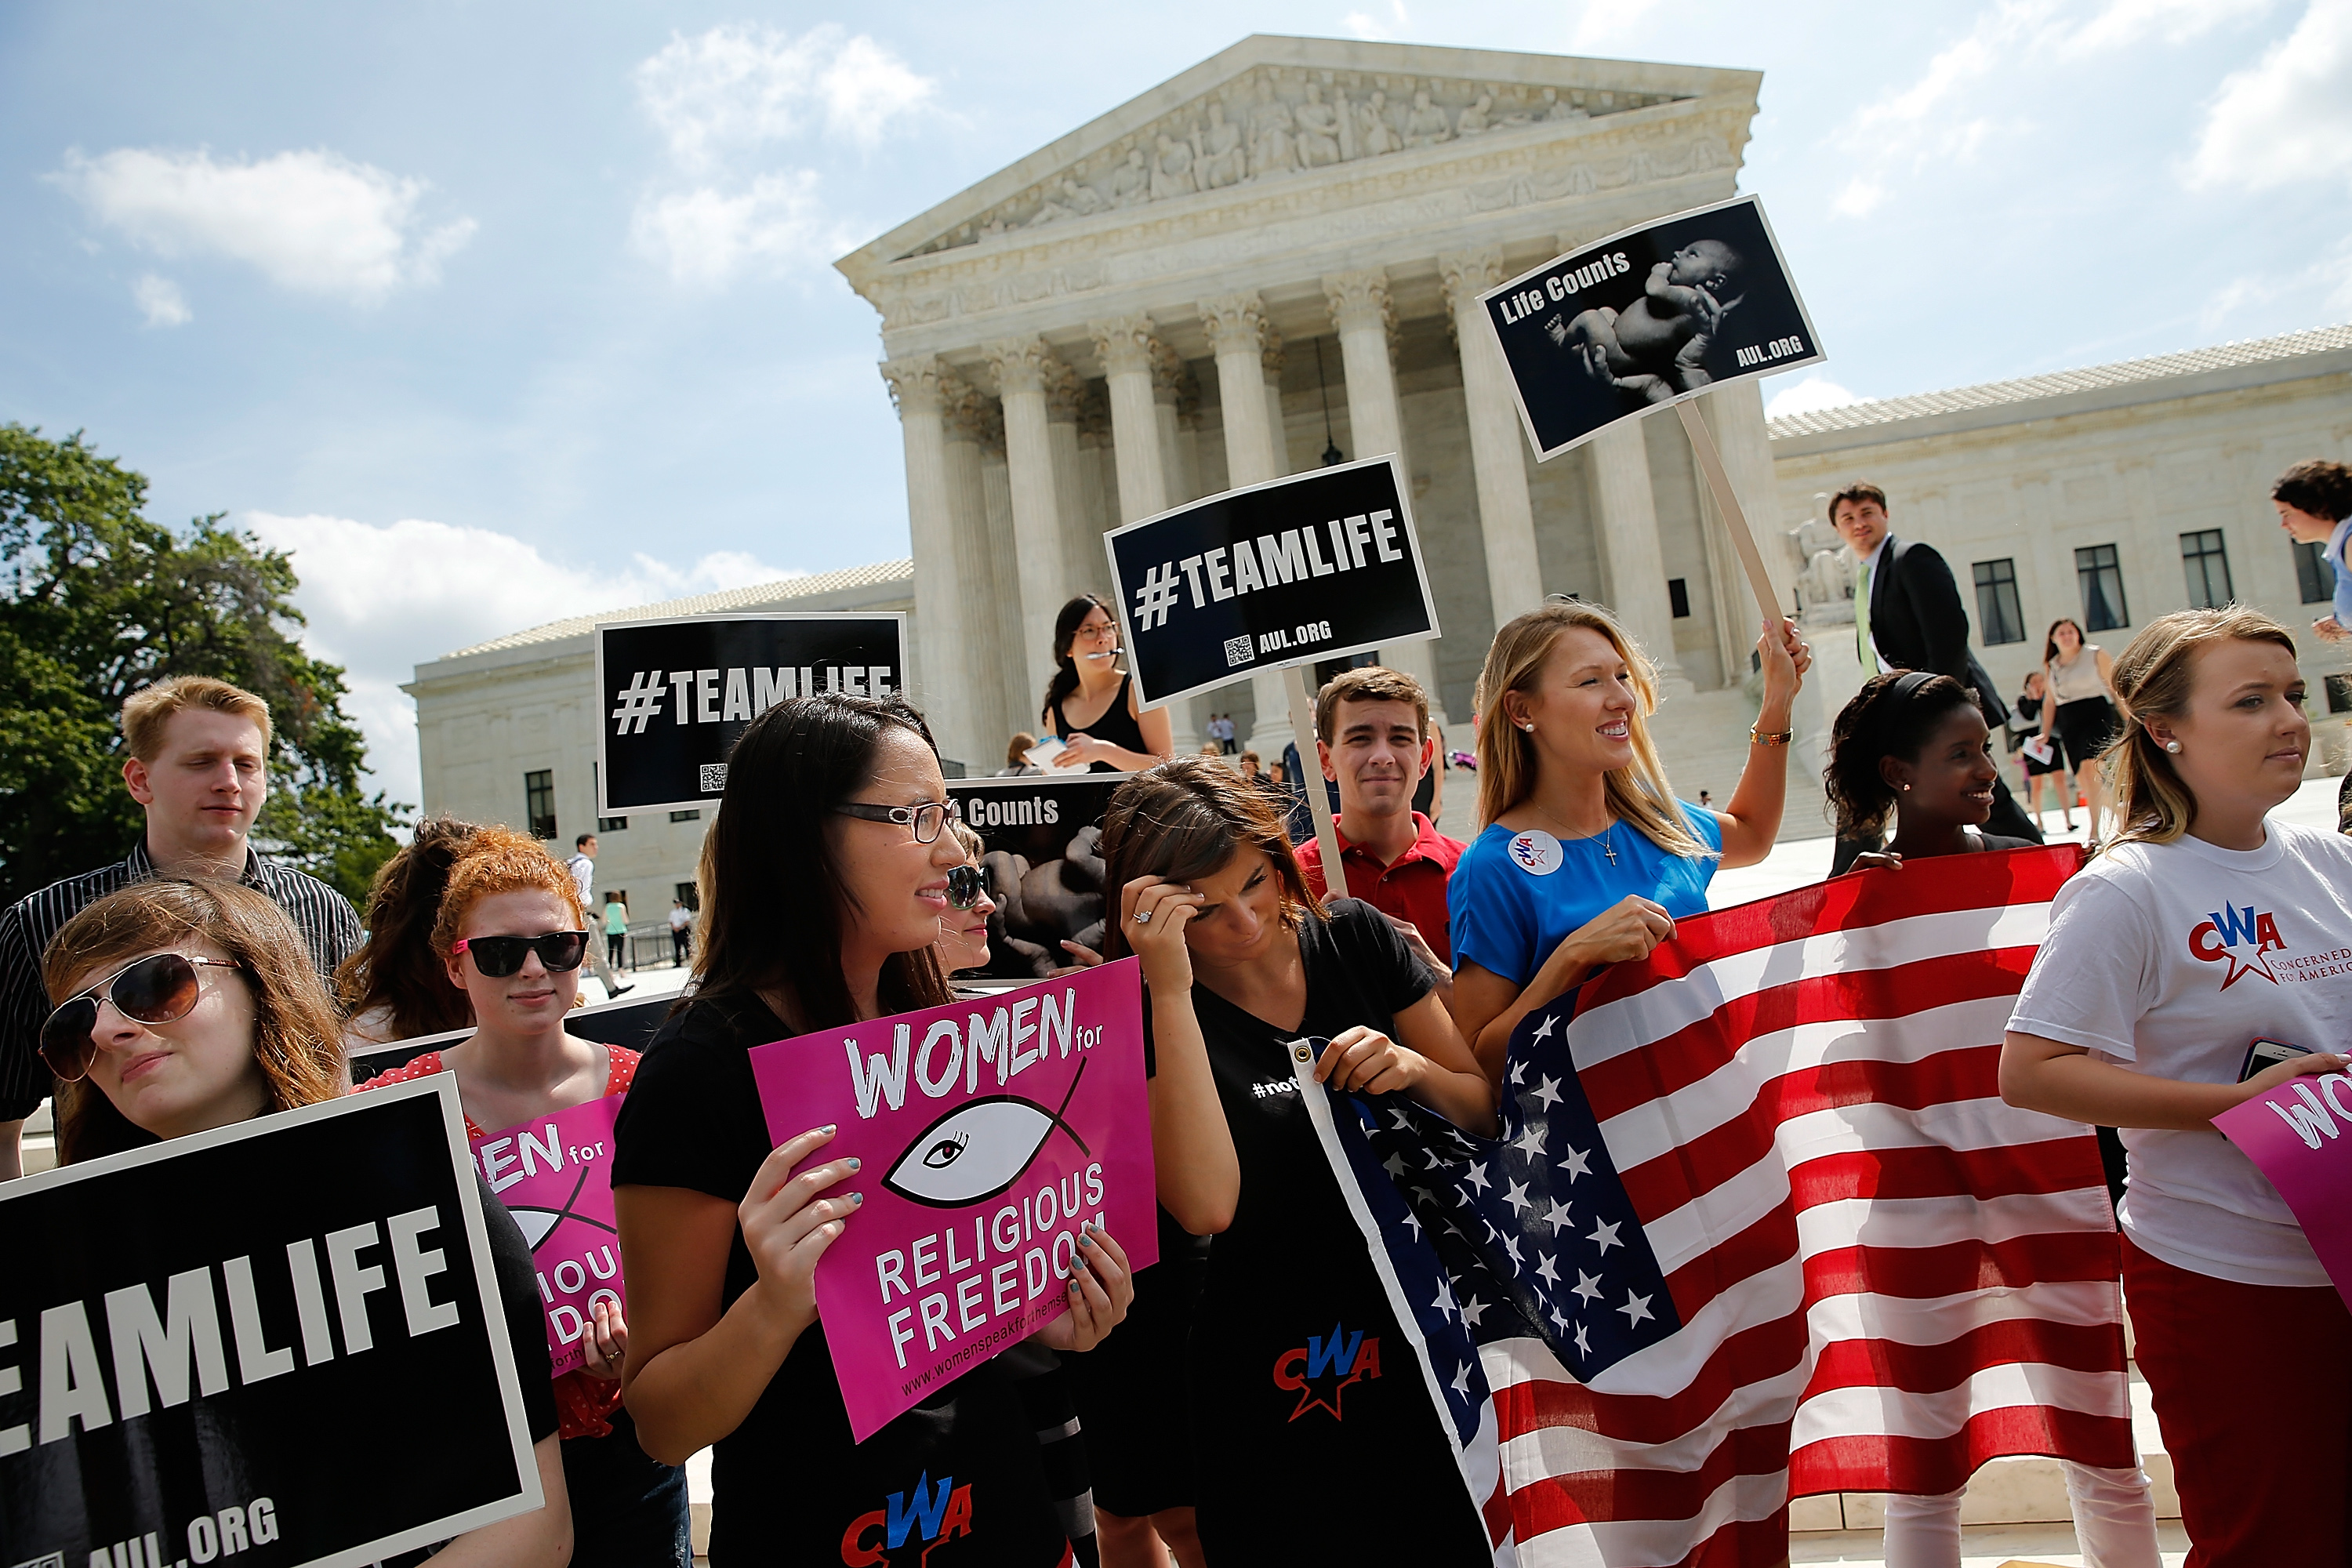 Pro-life activists gather outside the U.S. Supreme Court June 26, 2014 in Washington, DC.